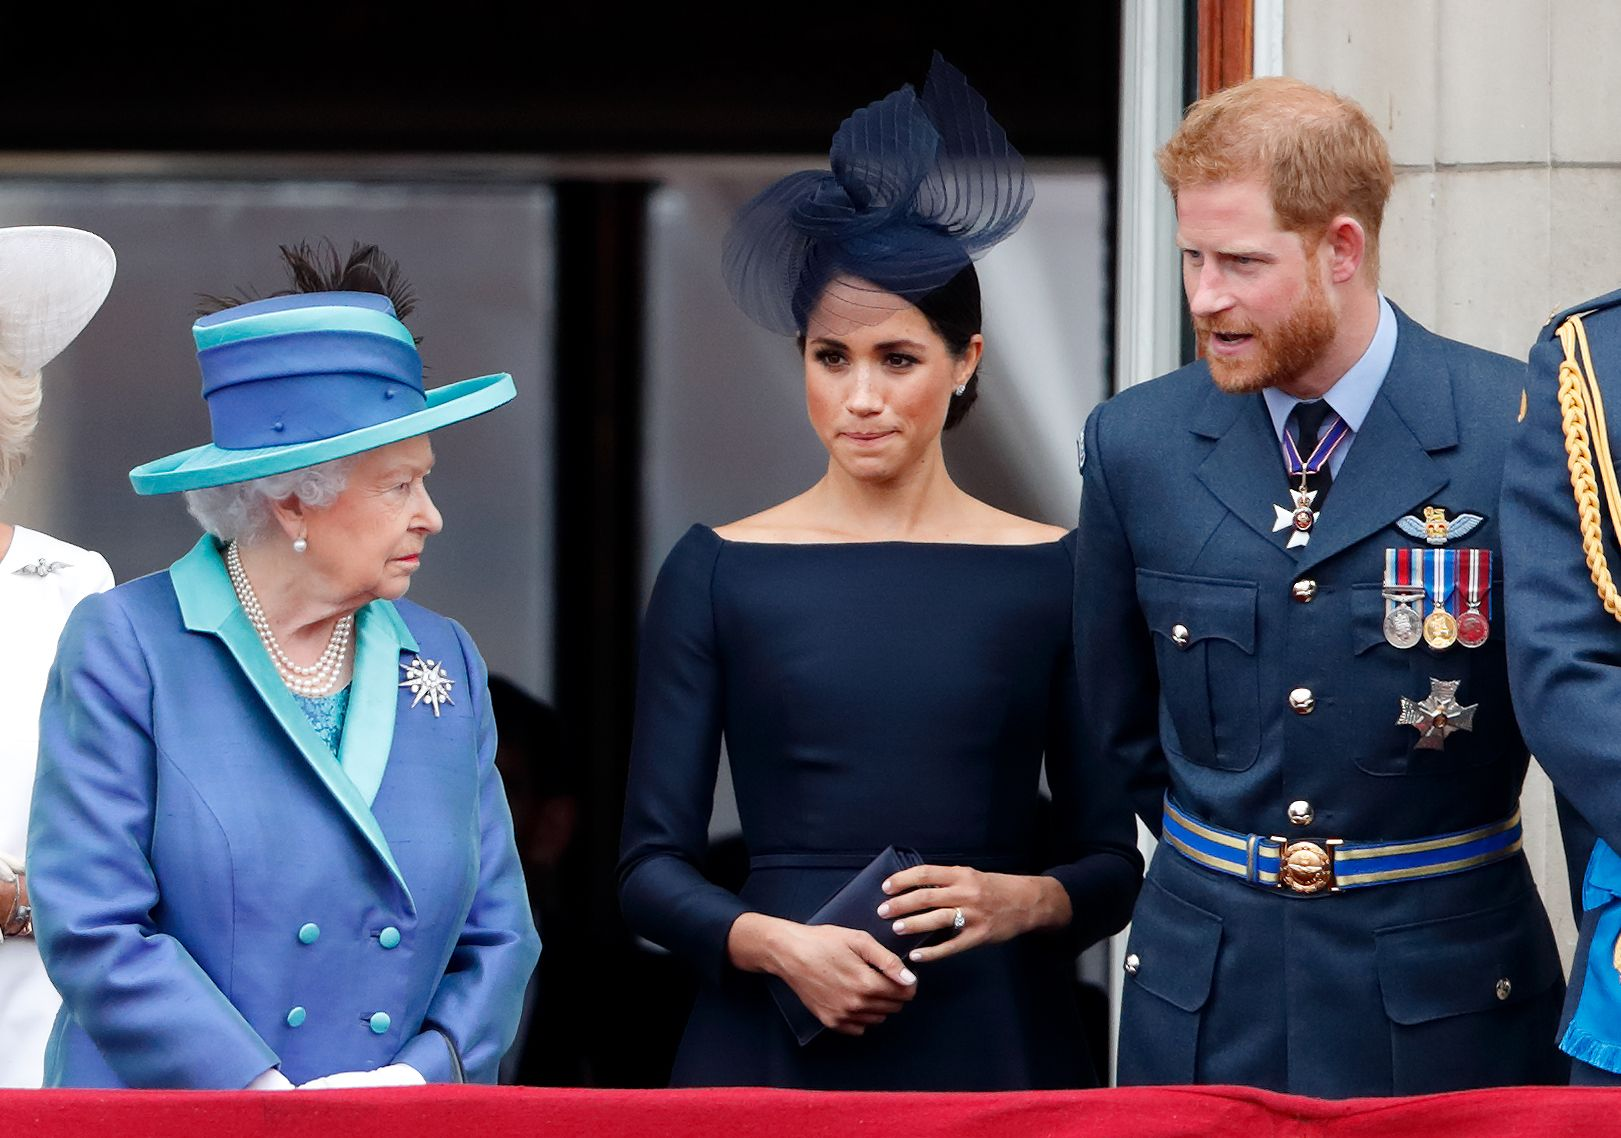 """The Queen Is in """"Constant Crisis Meetings"""" as Sussexes' Tell-All Has """"Wreaked Havoc"""""""